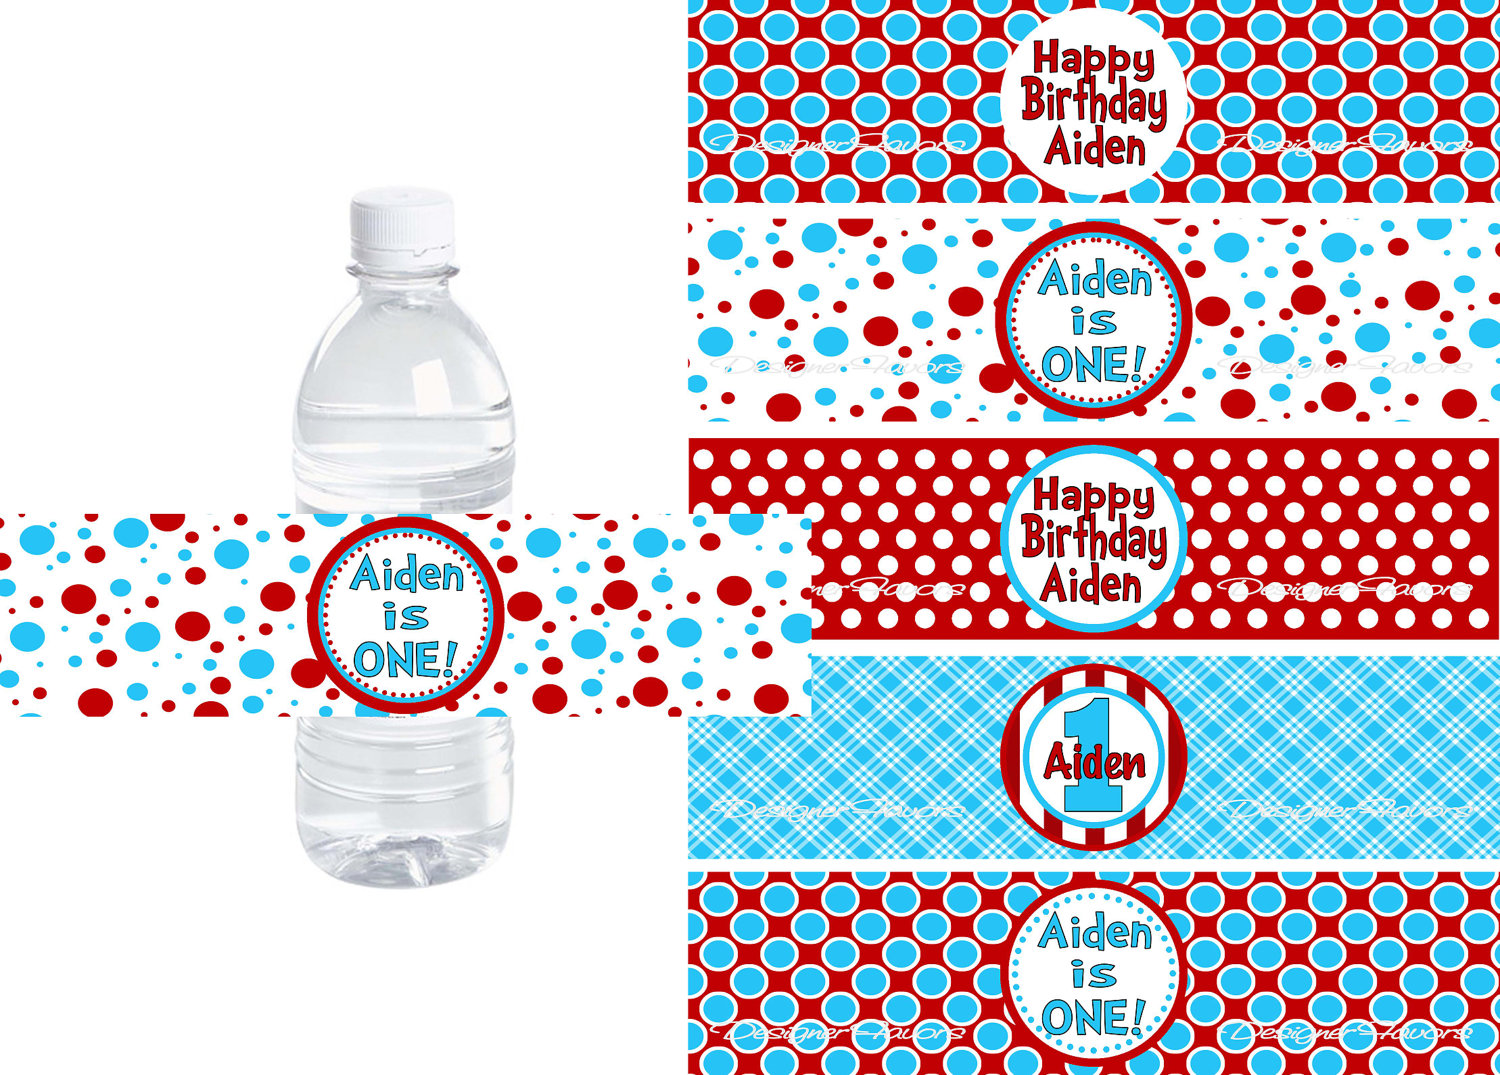 free printable water bottle labels for birthday ; c24a30f4f23ac7047982adbc63949db3